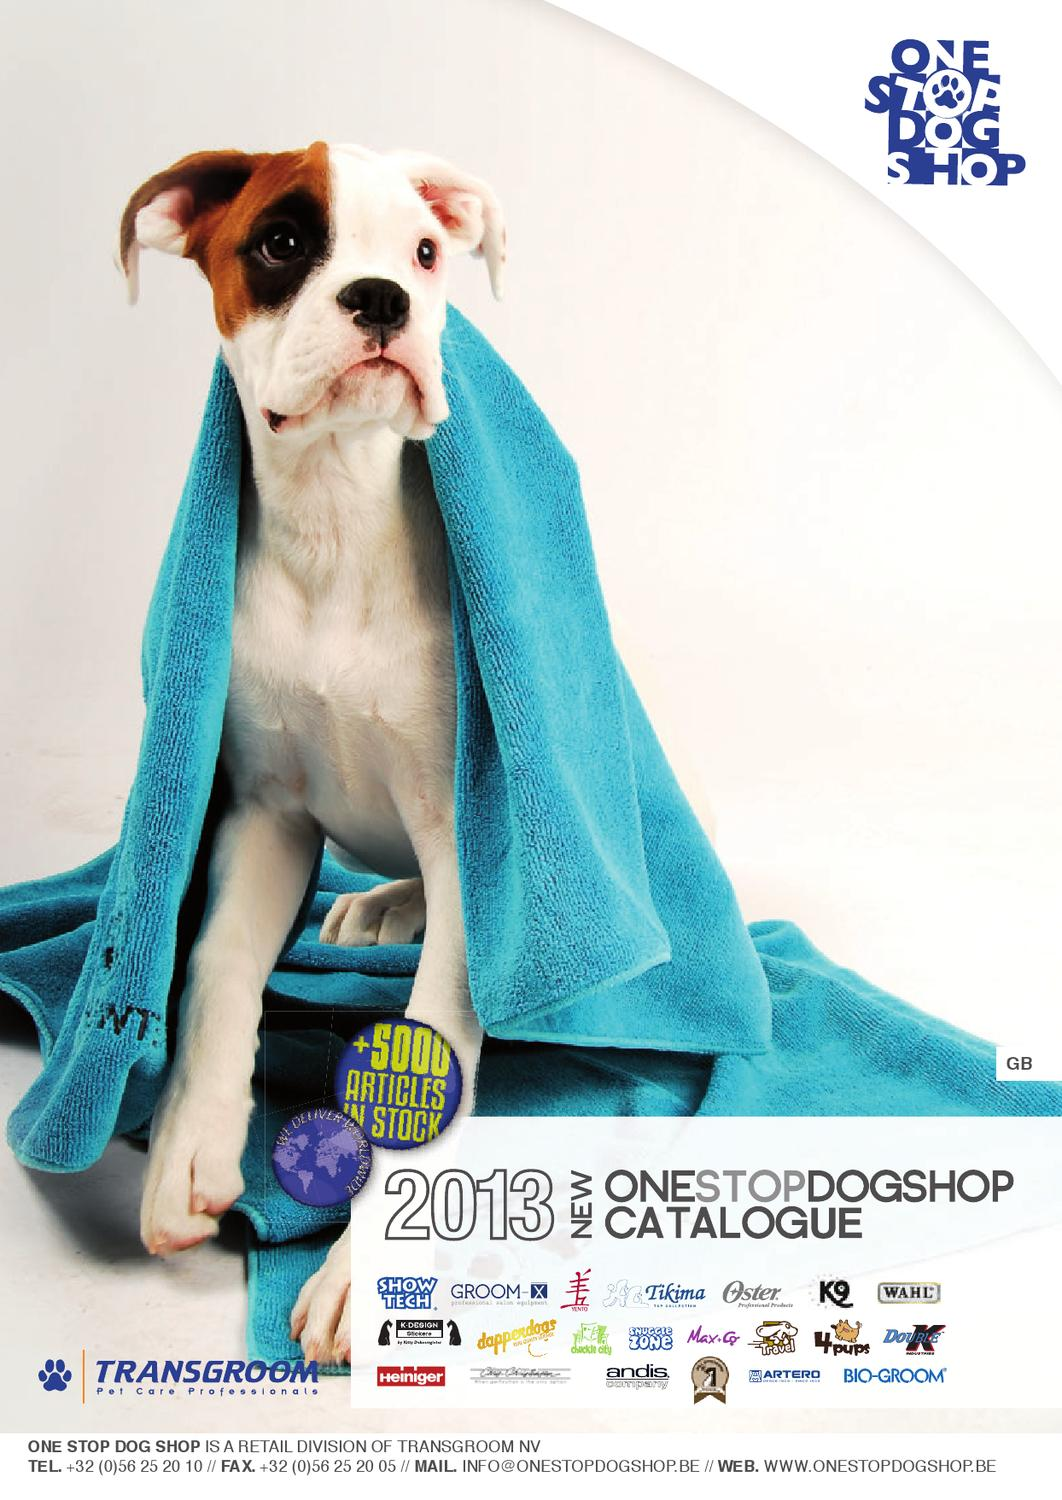 One Stop Dog Shop Catalog 2013 (English version) by Transgroom - issuu